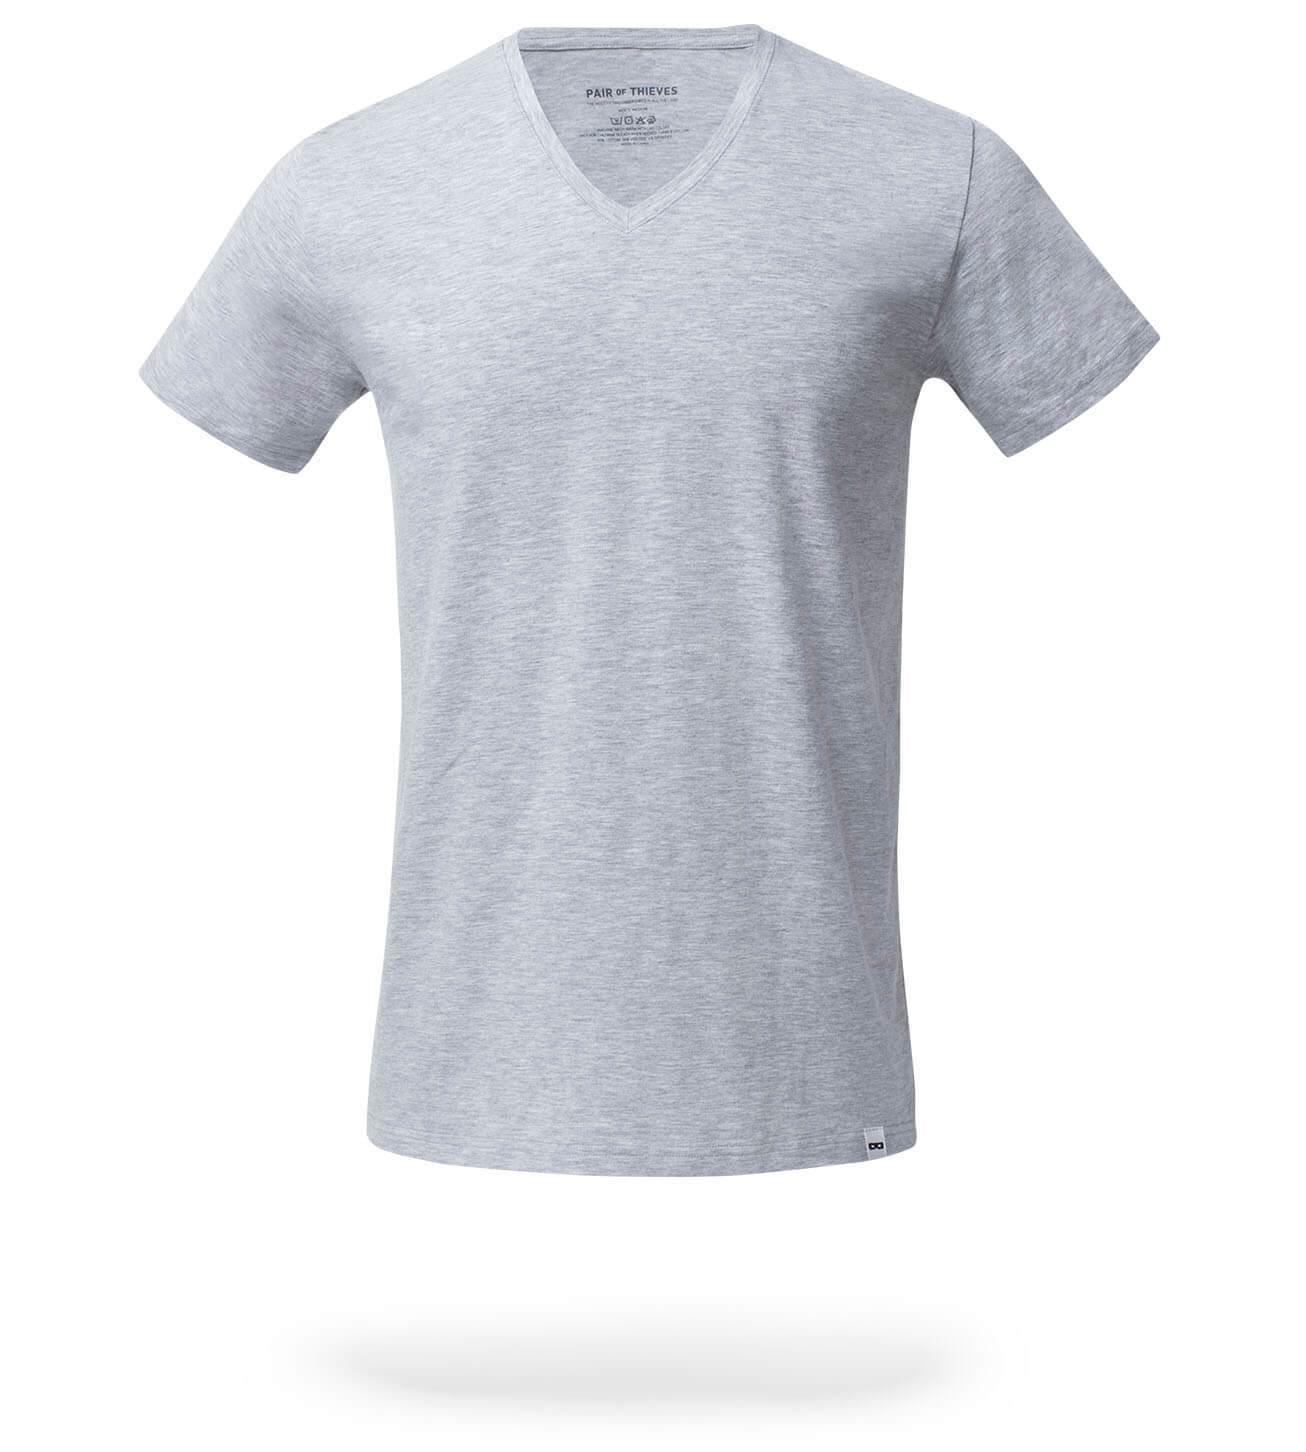 The Solid Colors SuperSoft V-Neck Tee 4 Pack